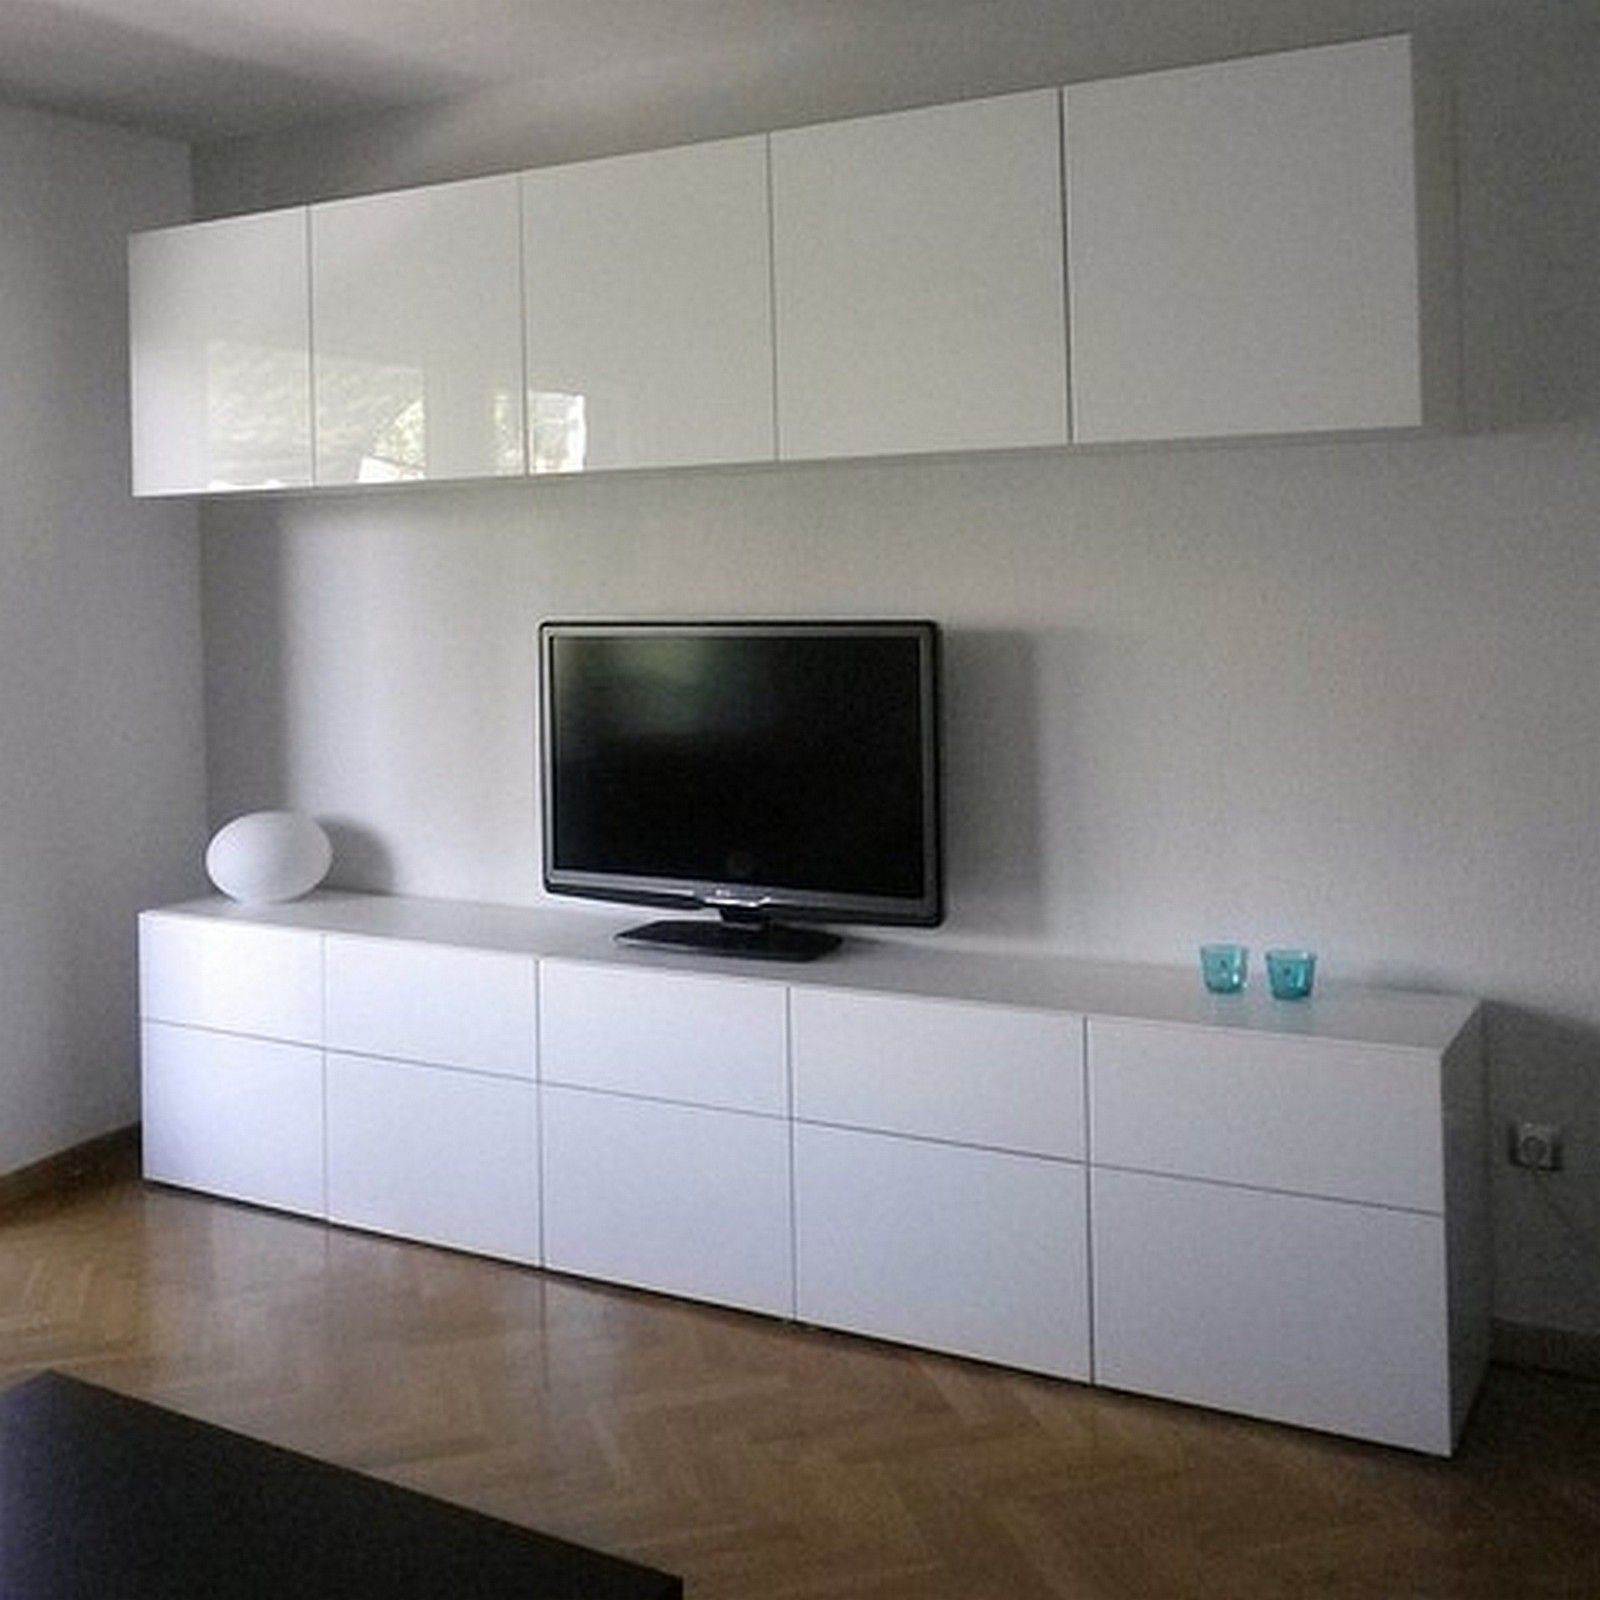 ikea besta cabinets with high gloss doors in living room. Black Bedroom Furniture Sets. Home Design Ideas